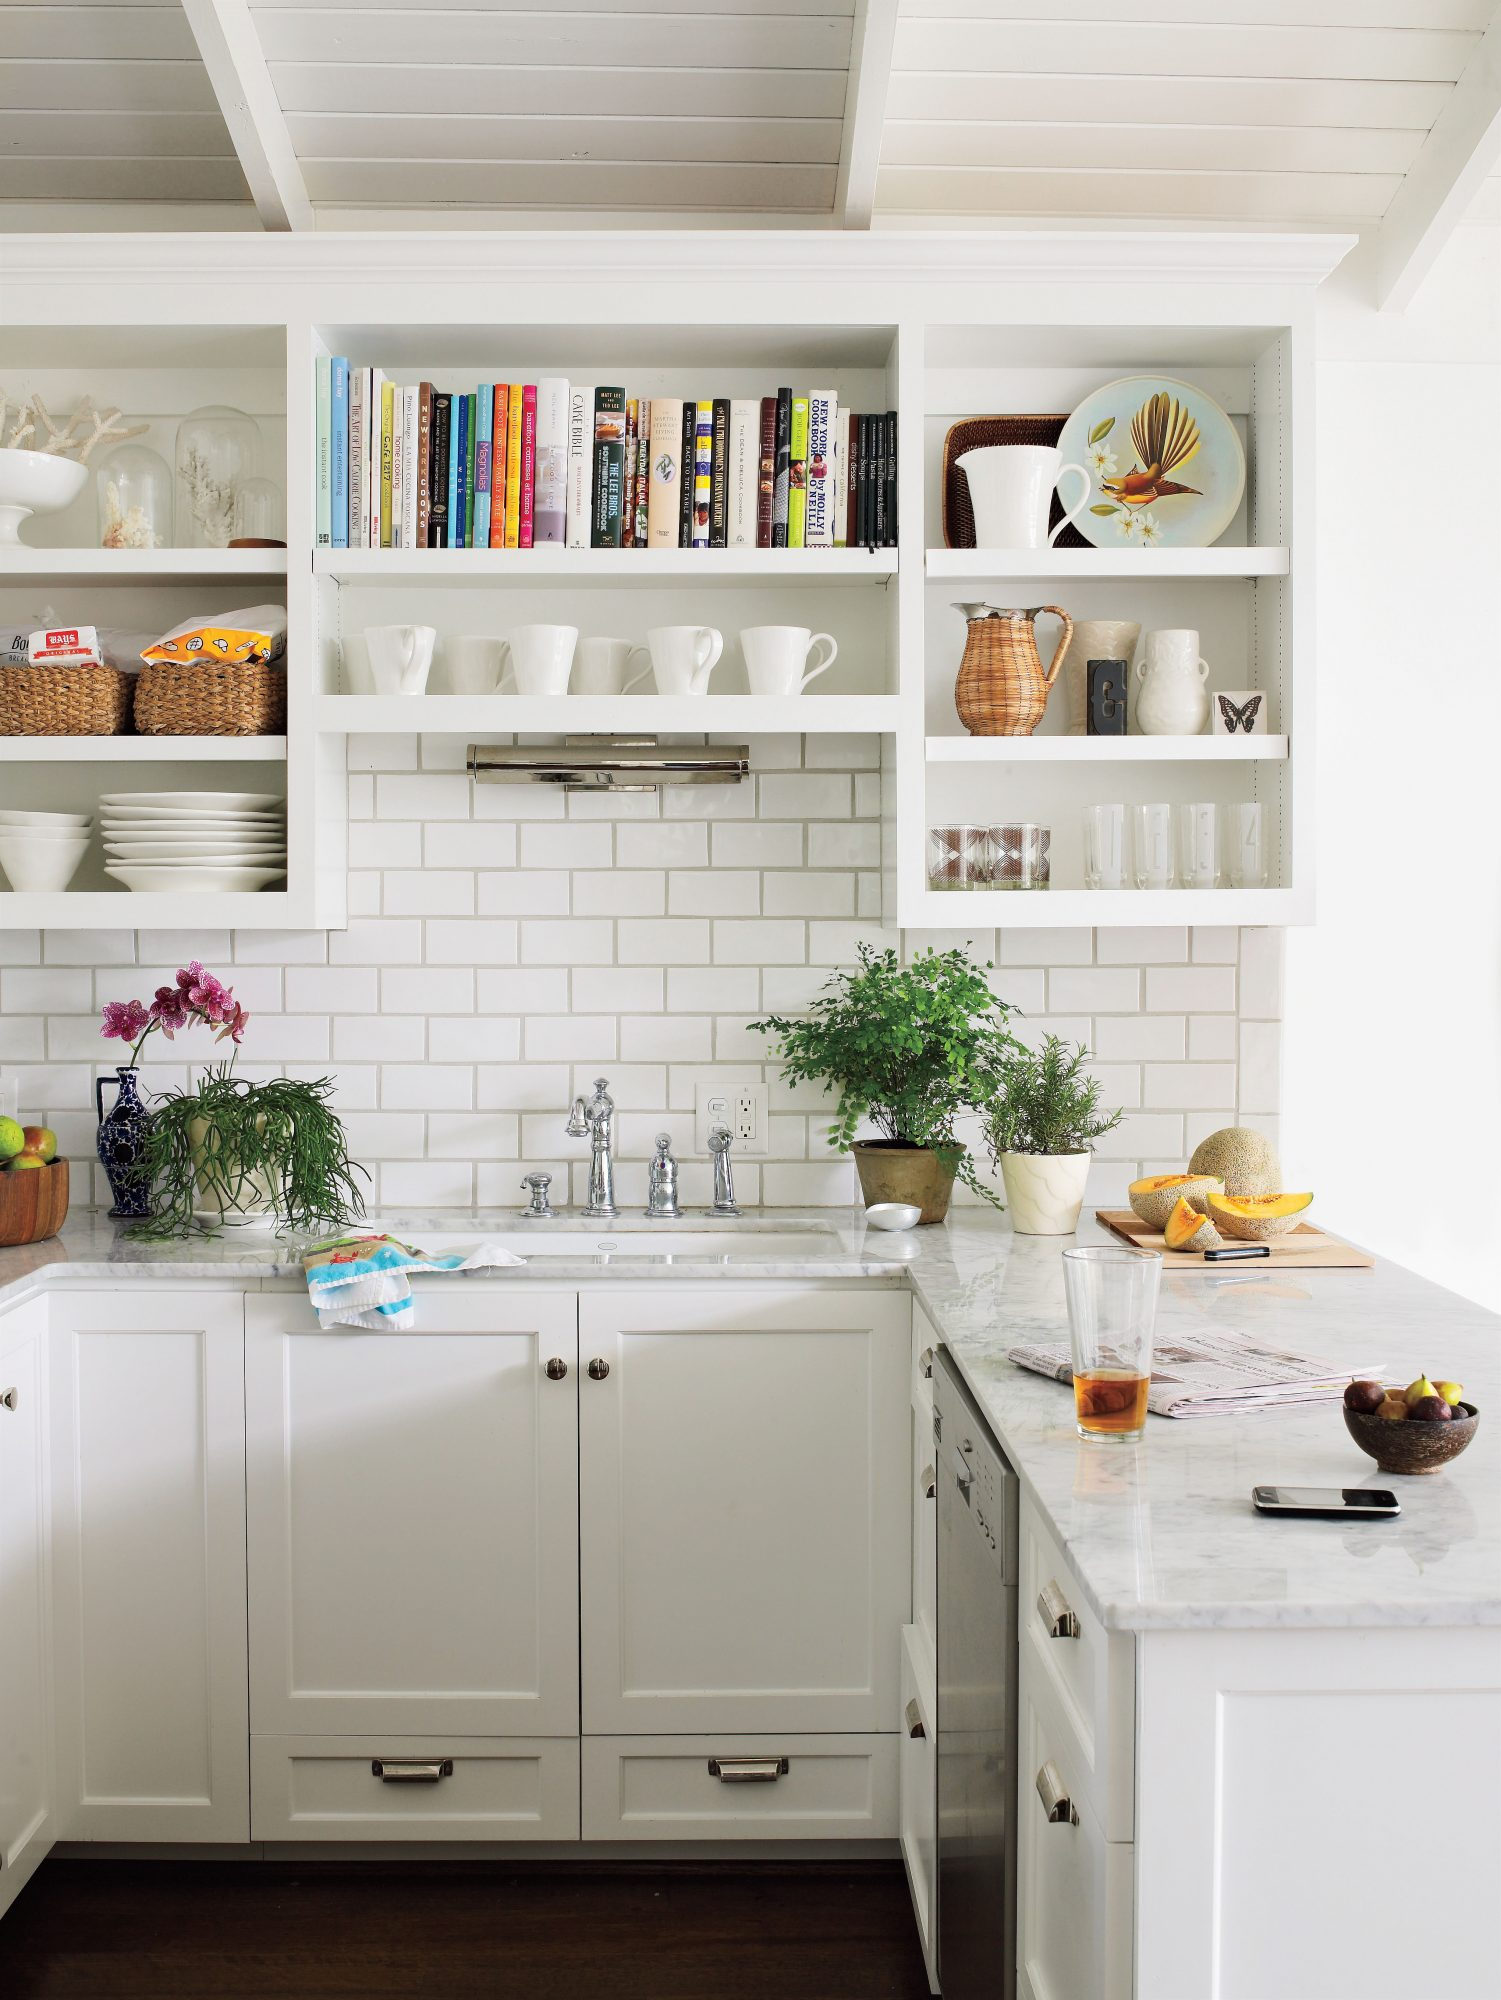 Crisp, Clean Kitchen Cabinets